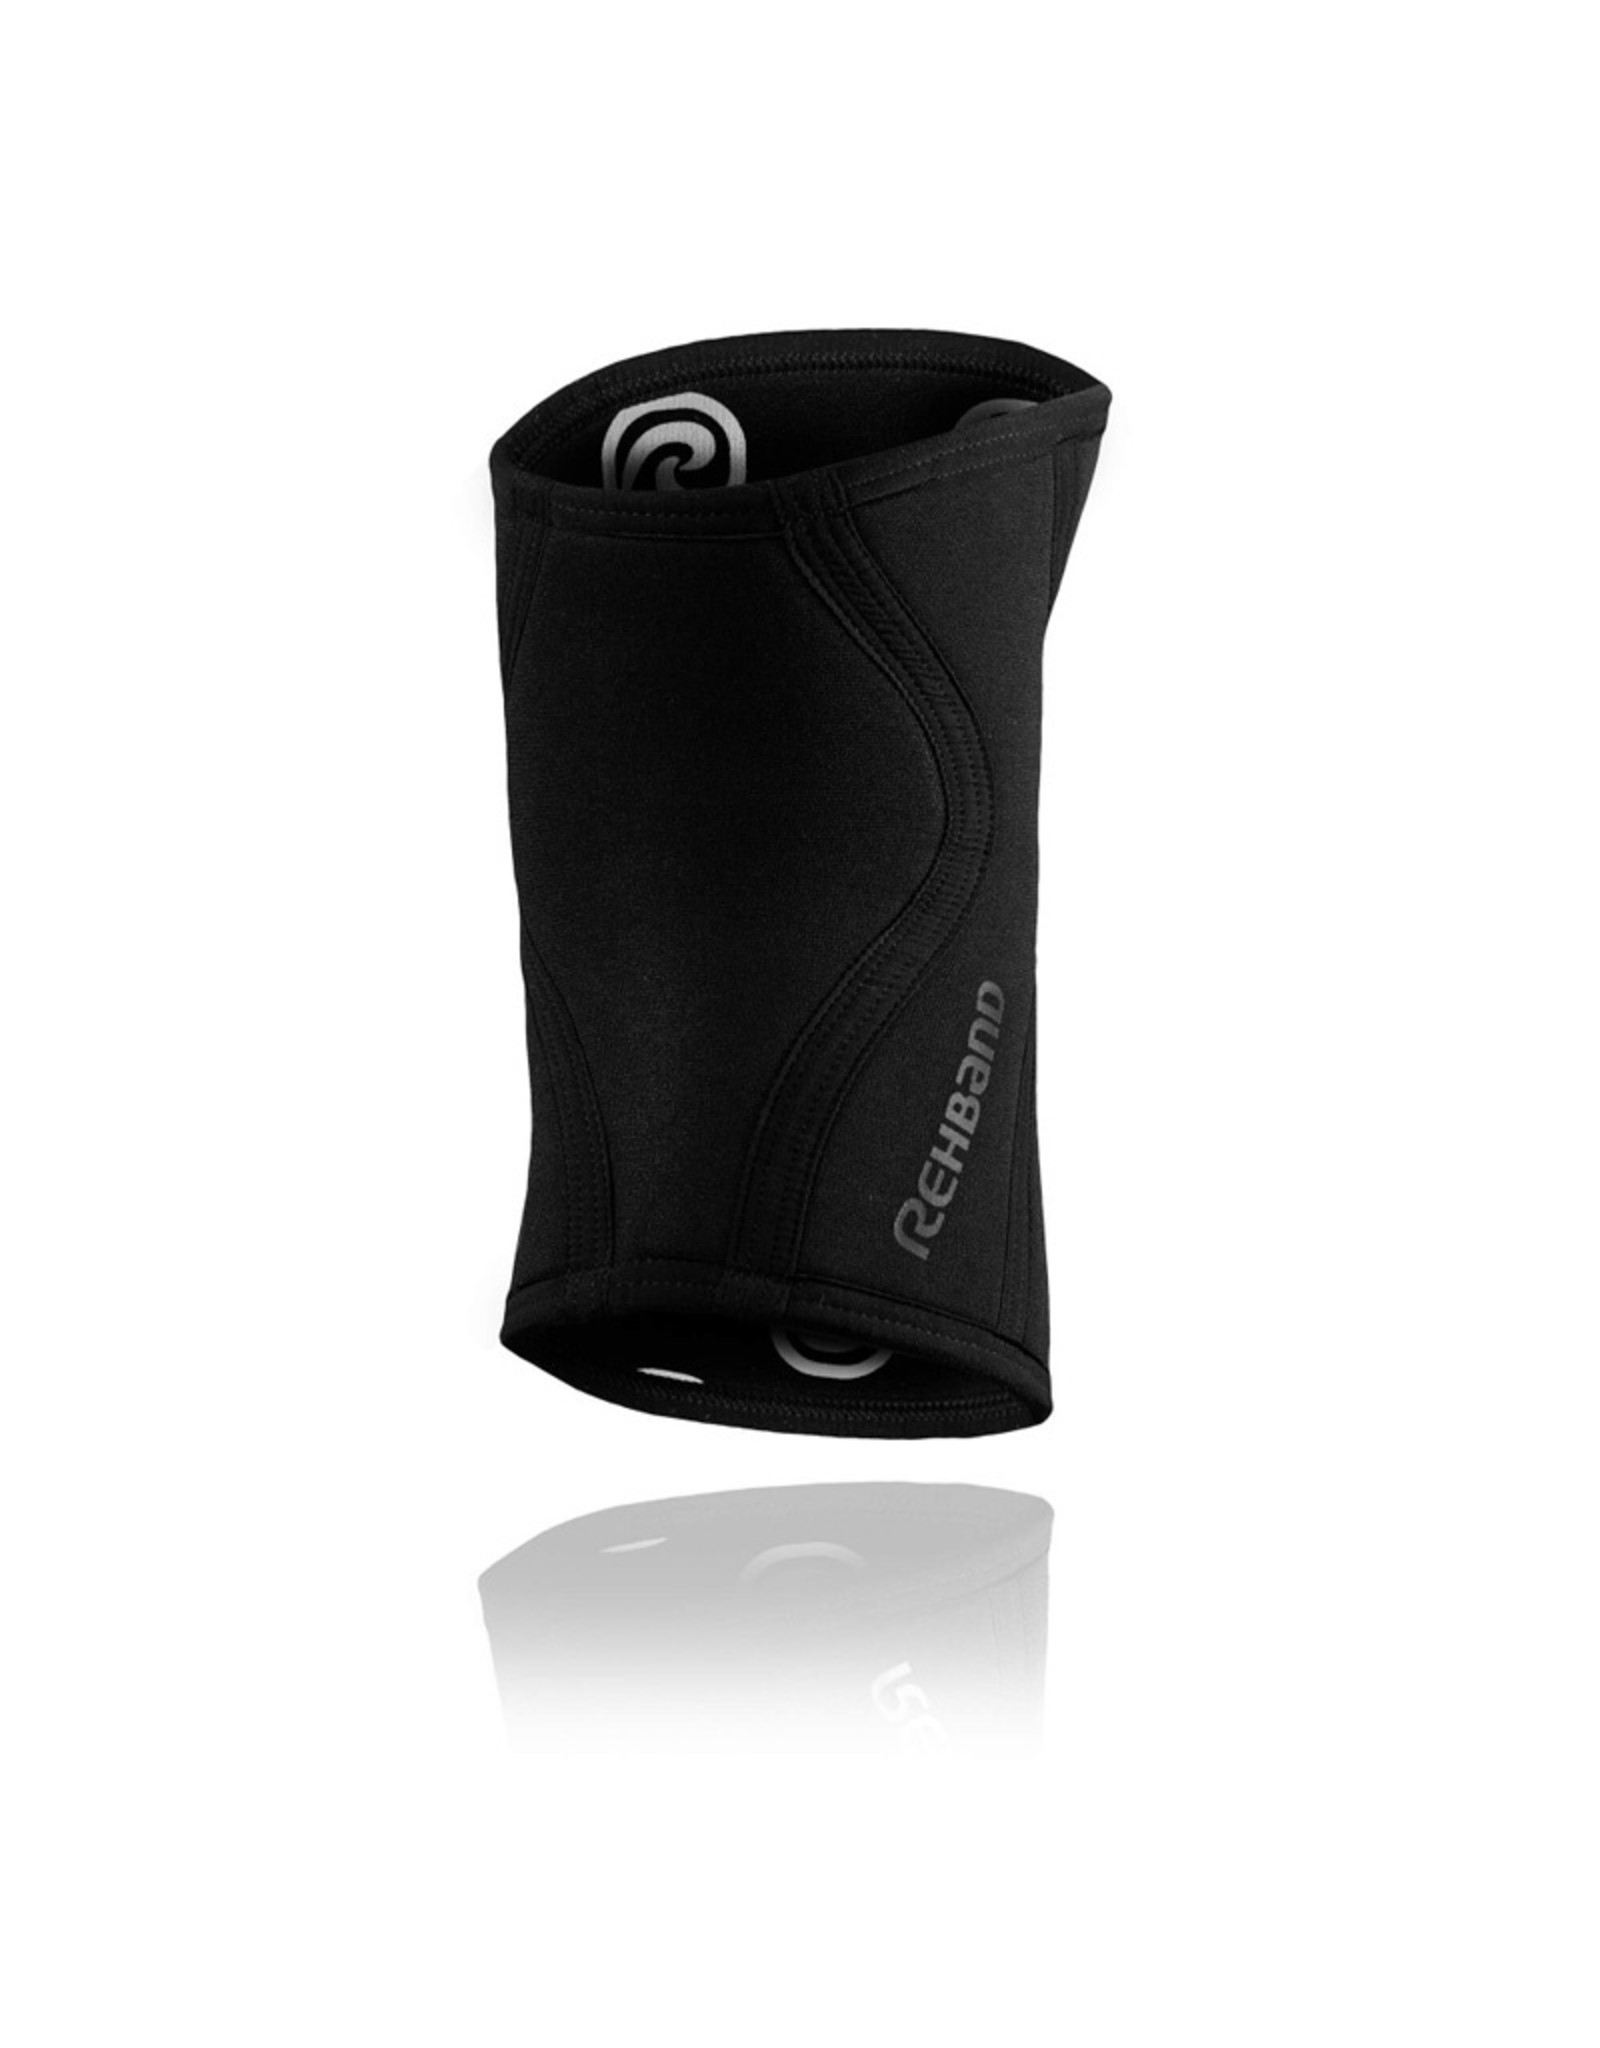 Rehband Rx Knee Sleeve 5Mm Kniebrace - Carbon